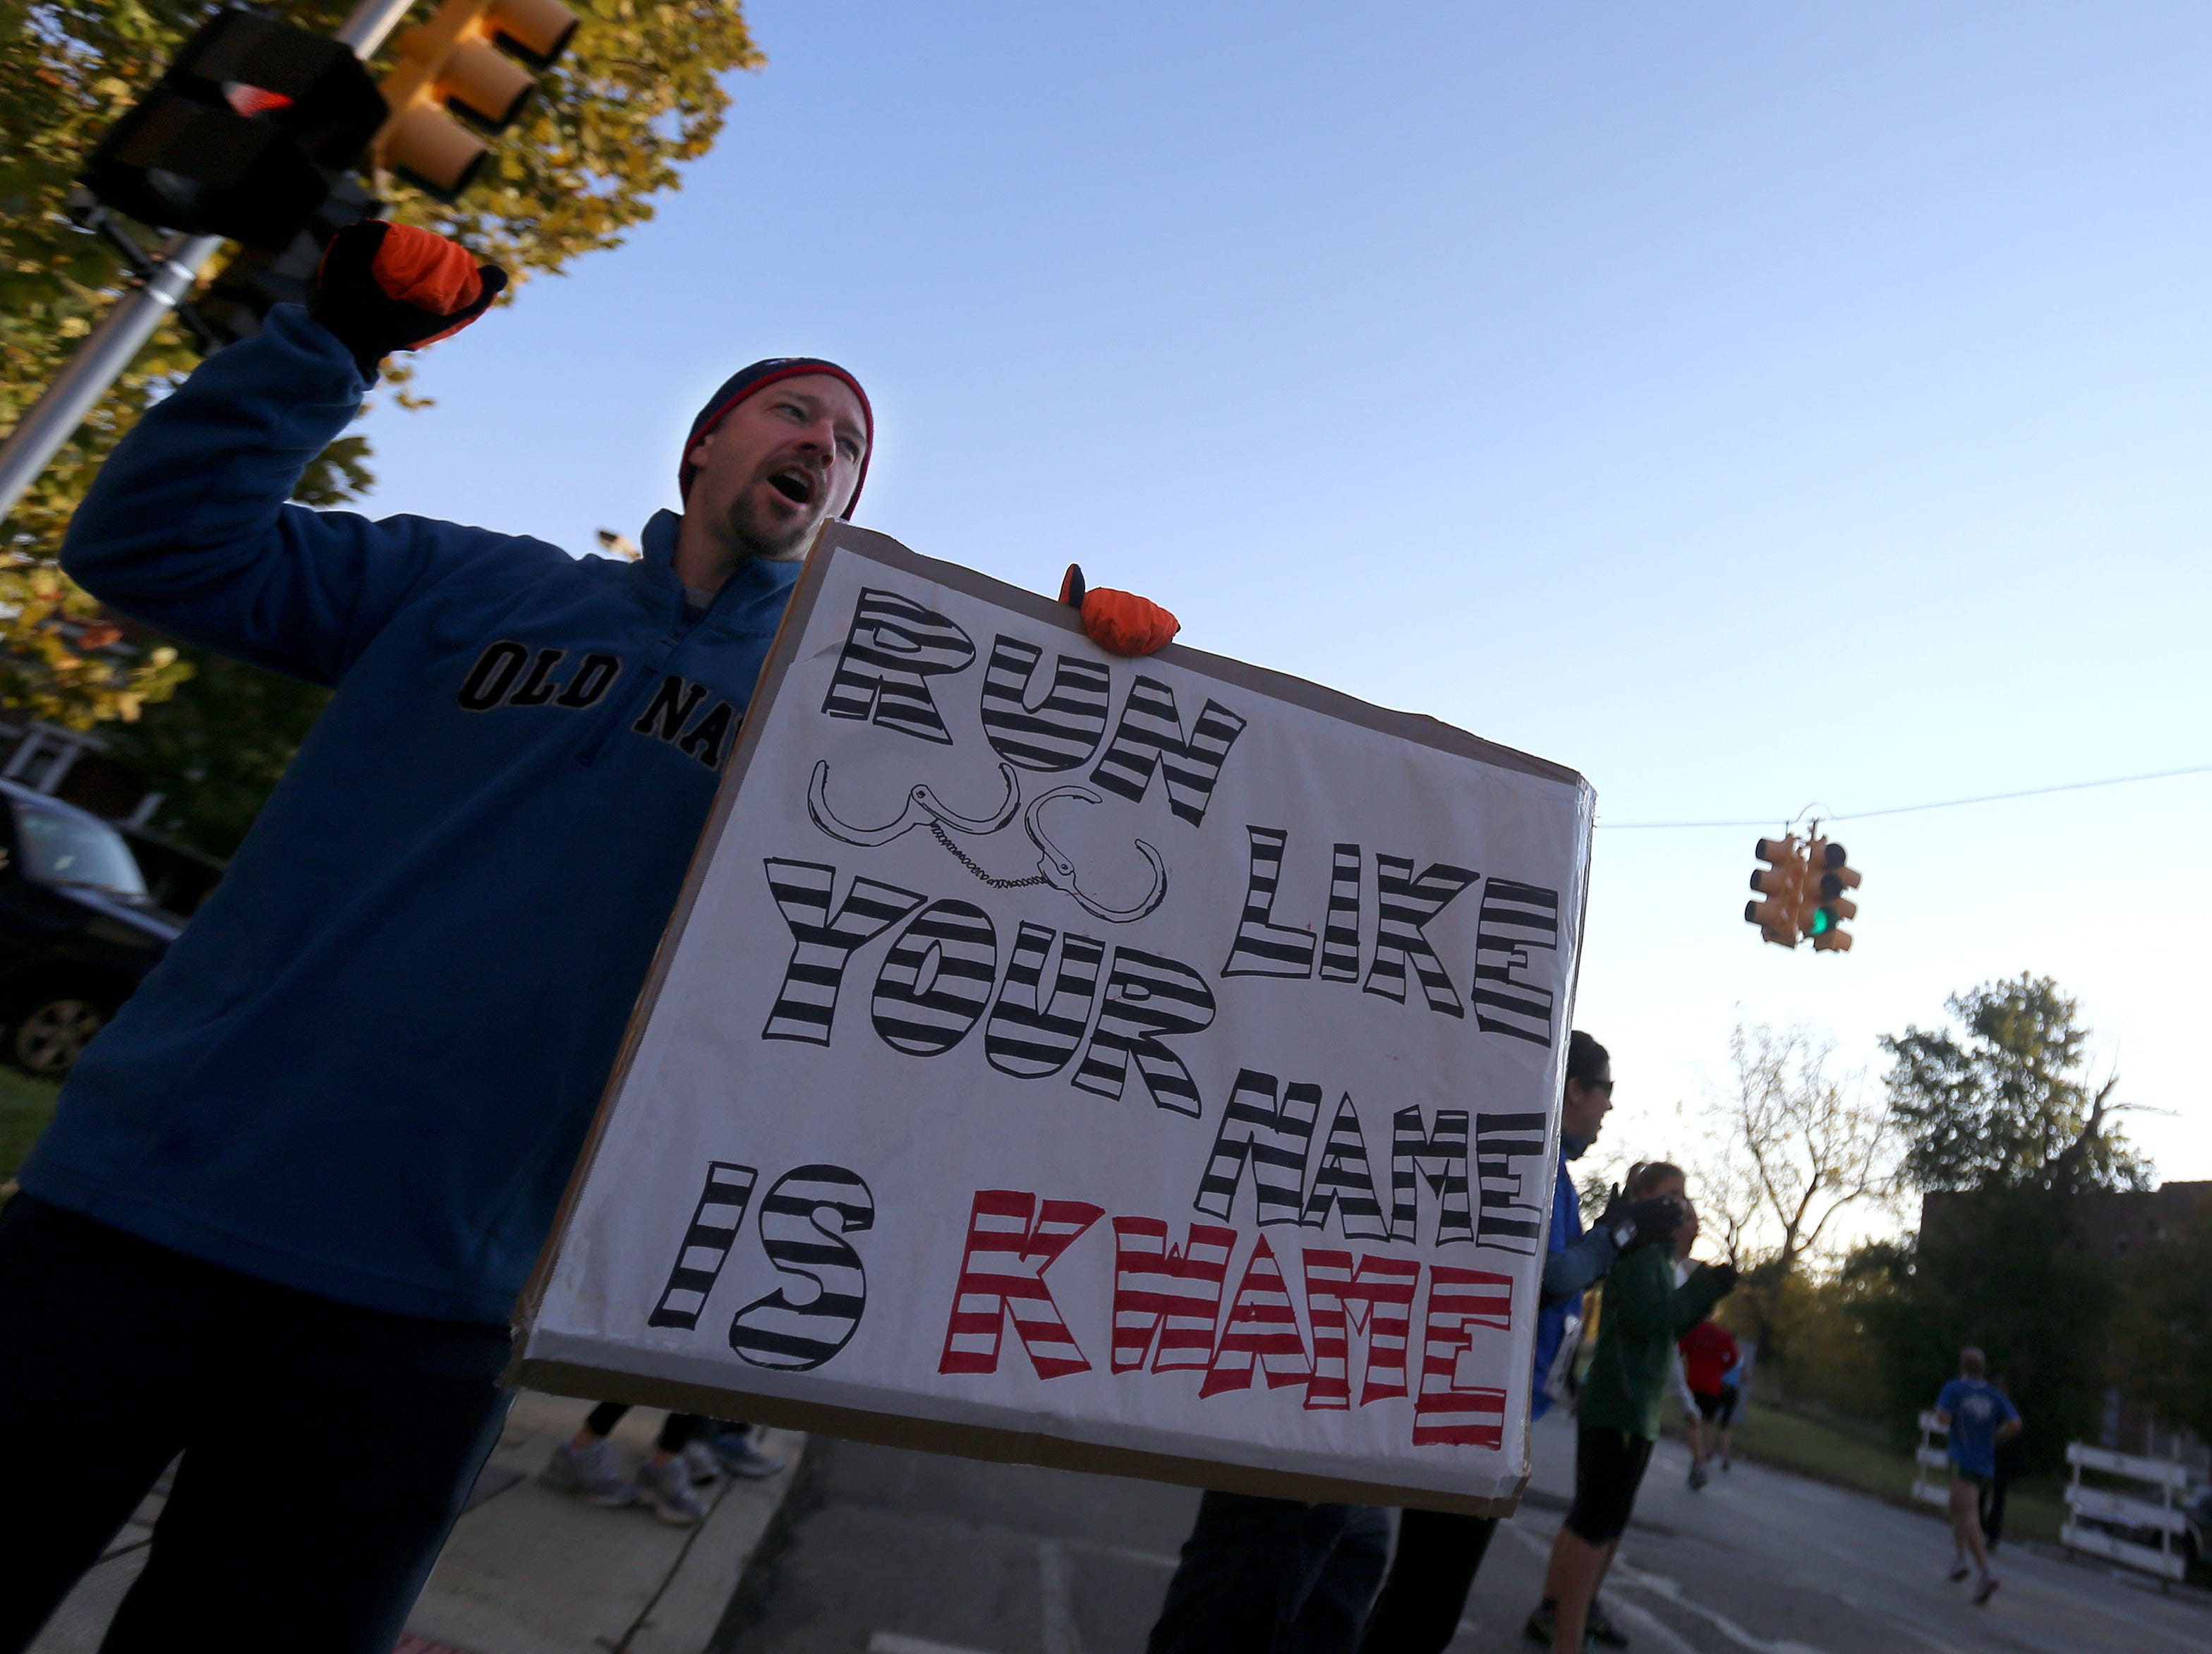 Chris Bailey, of West Bloomfield cheers on runners making their way down Lafayette during the 36th Annual Detroit Free Press/Talmer Bank Marathon in Detroit on Sunday, Oct. 20, 2013.